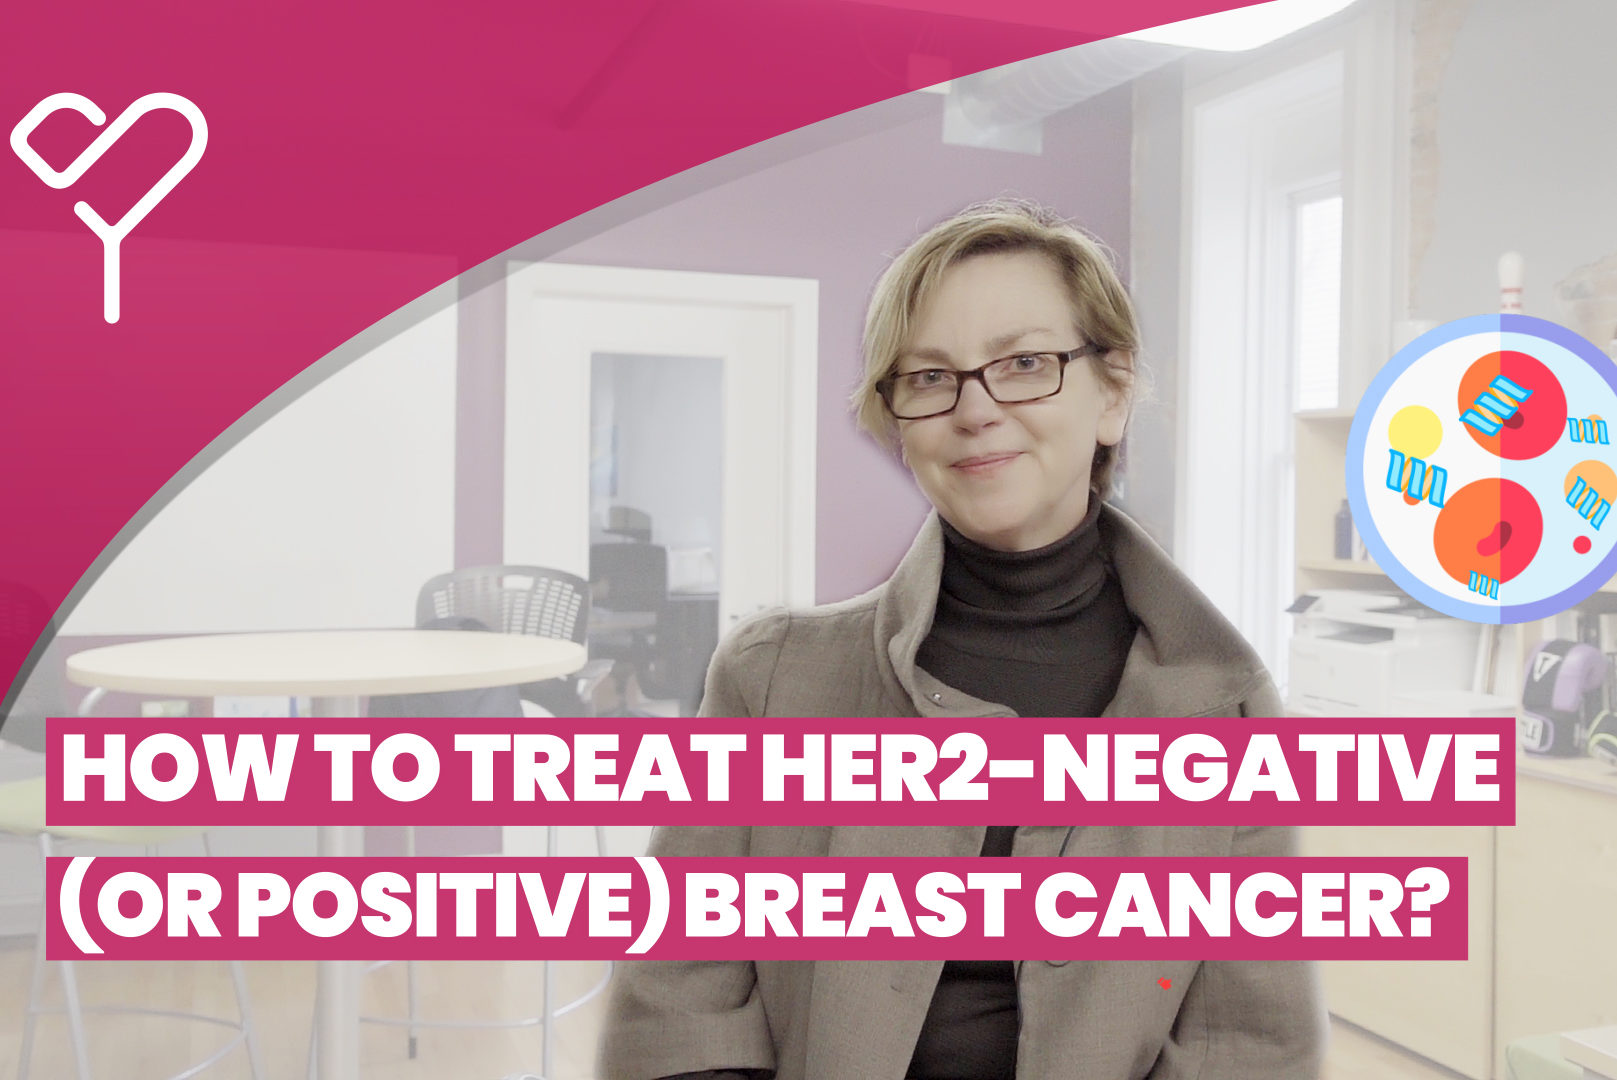 How to Treat HER2 Positive Breast Cancers?